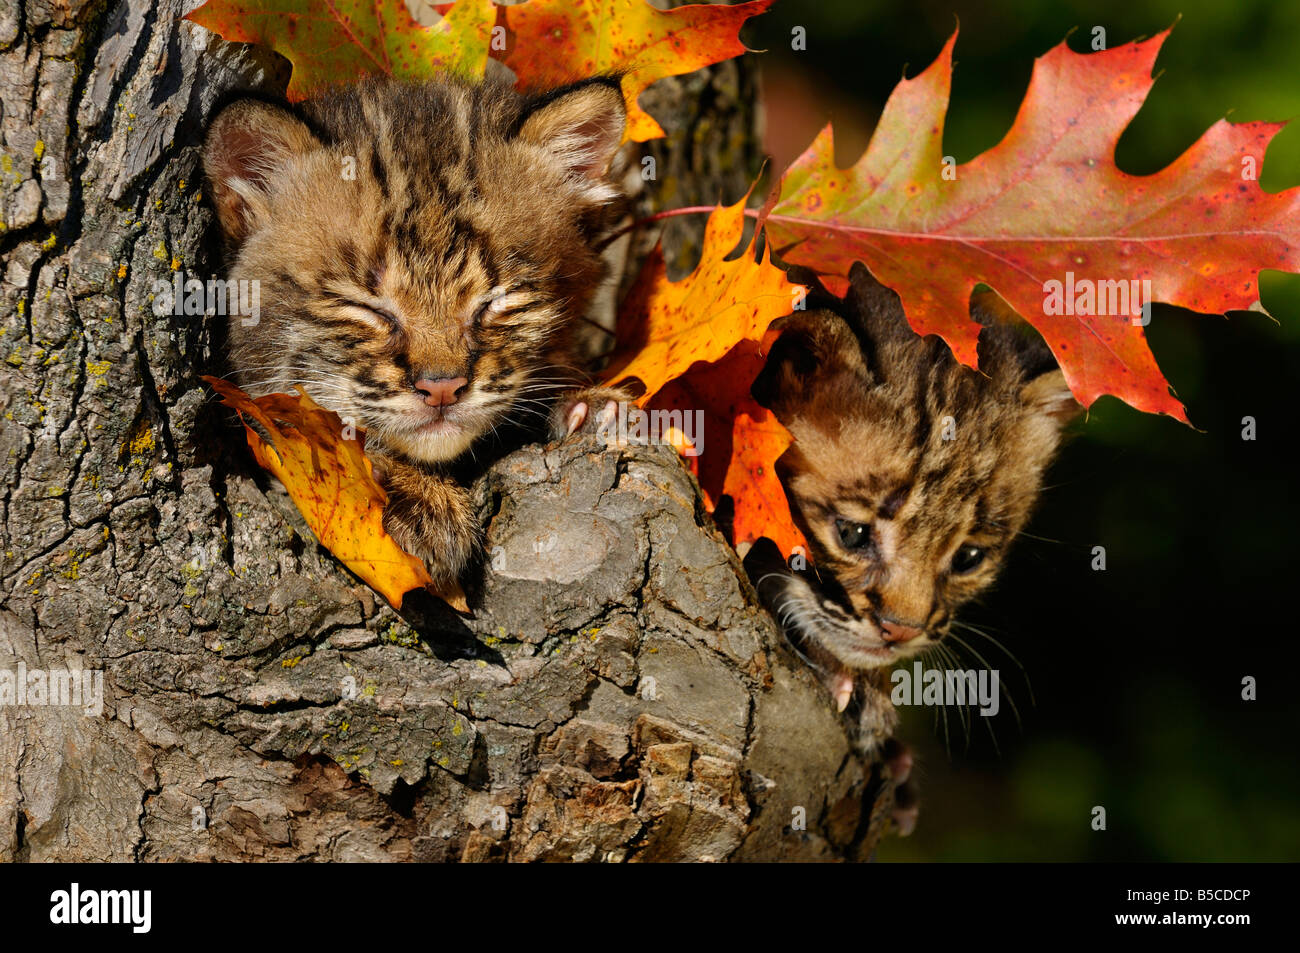 Sleepy and worried Bobcat kittens camouflaged and safe in a tree hollow den with Fall colored oak leaves - Stock Image